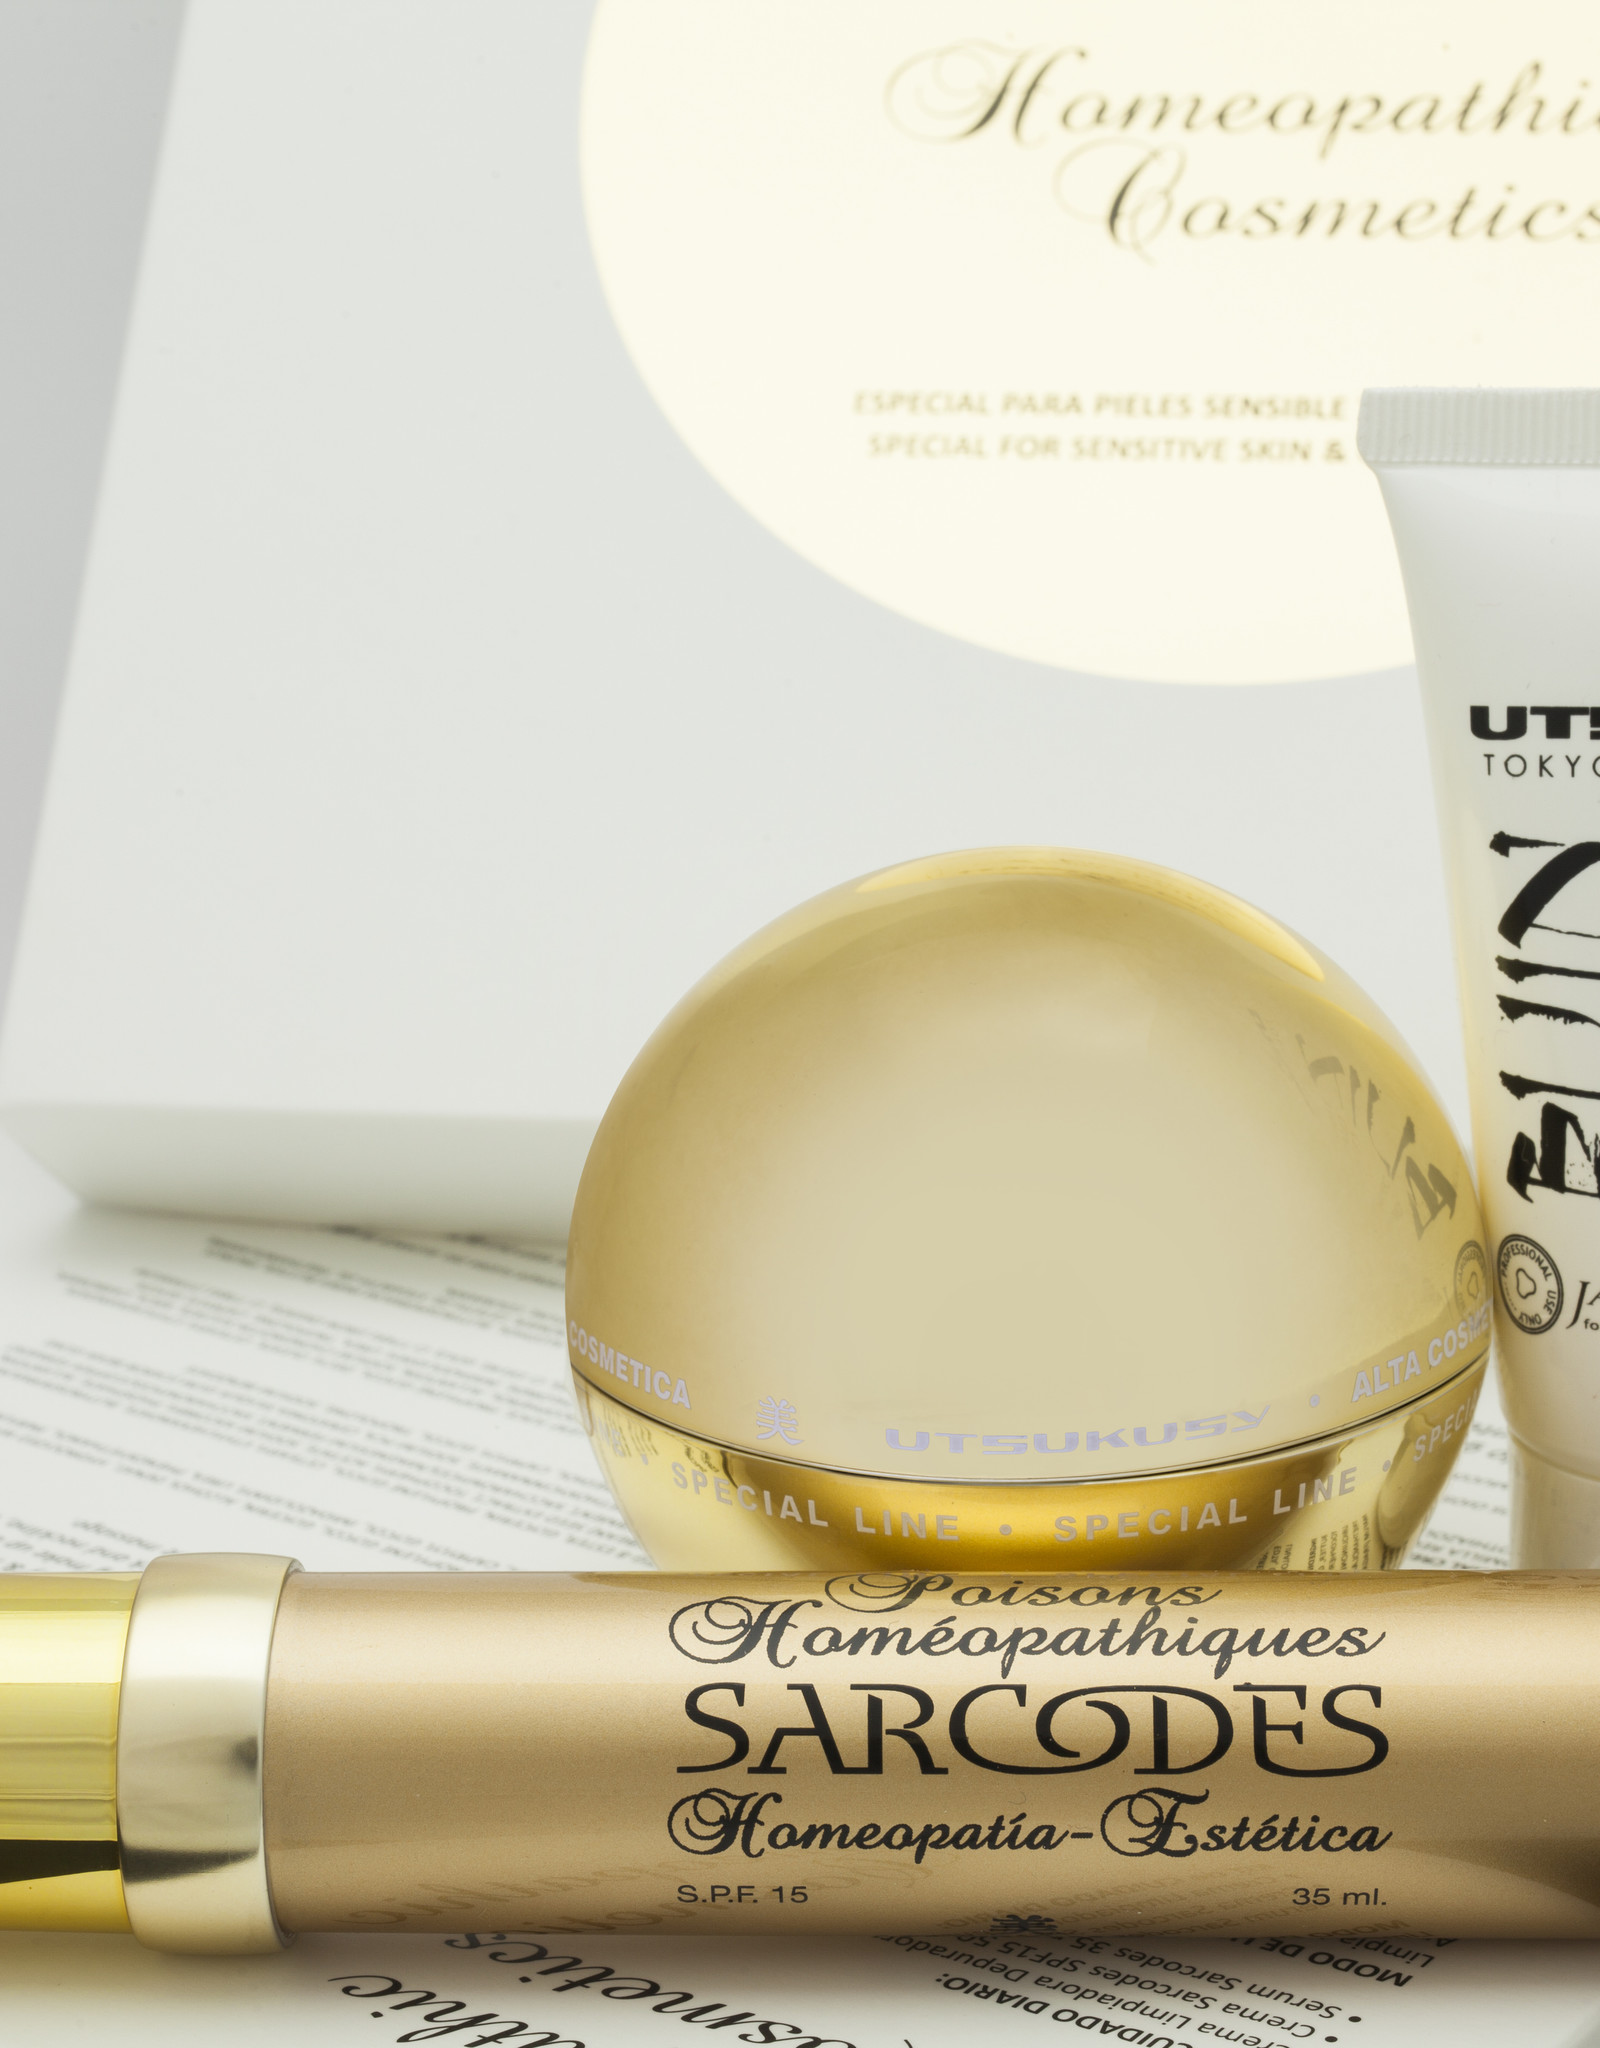 Utsukusy Sarcodes Couperose home care kit